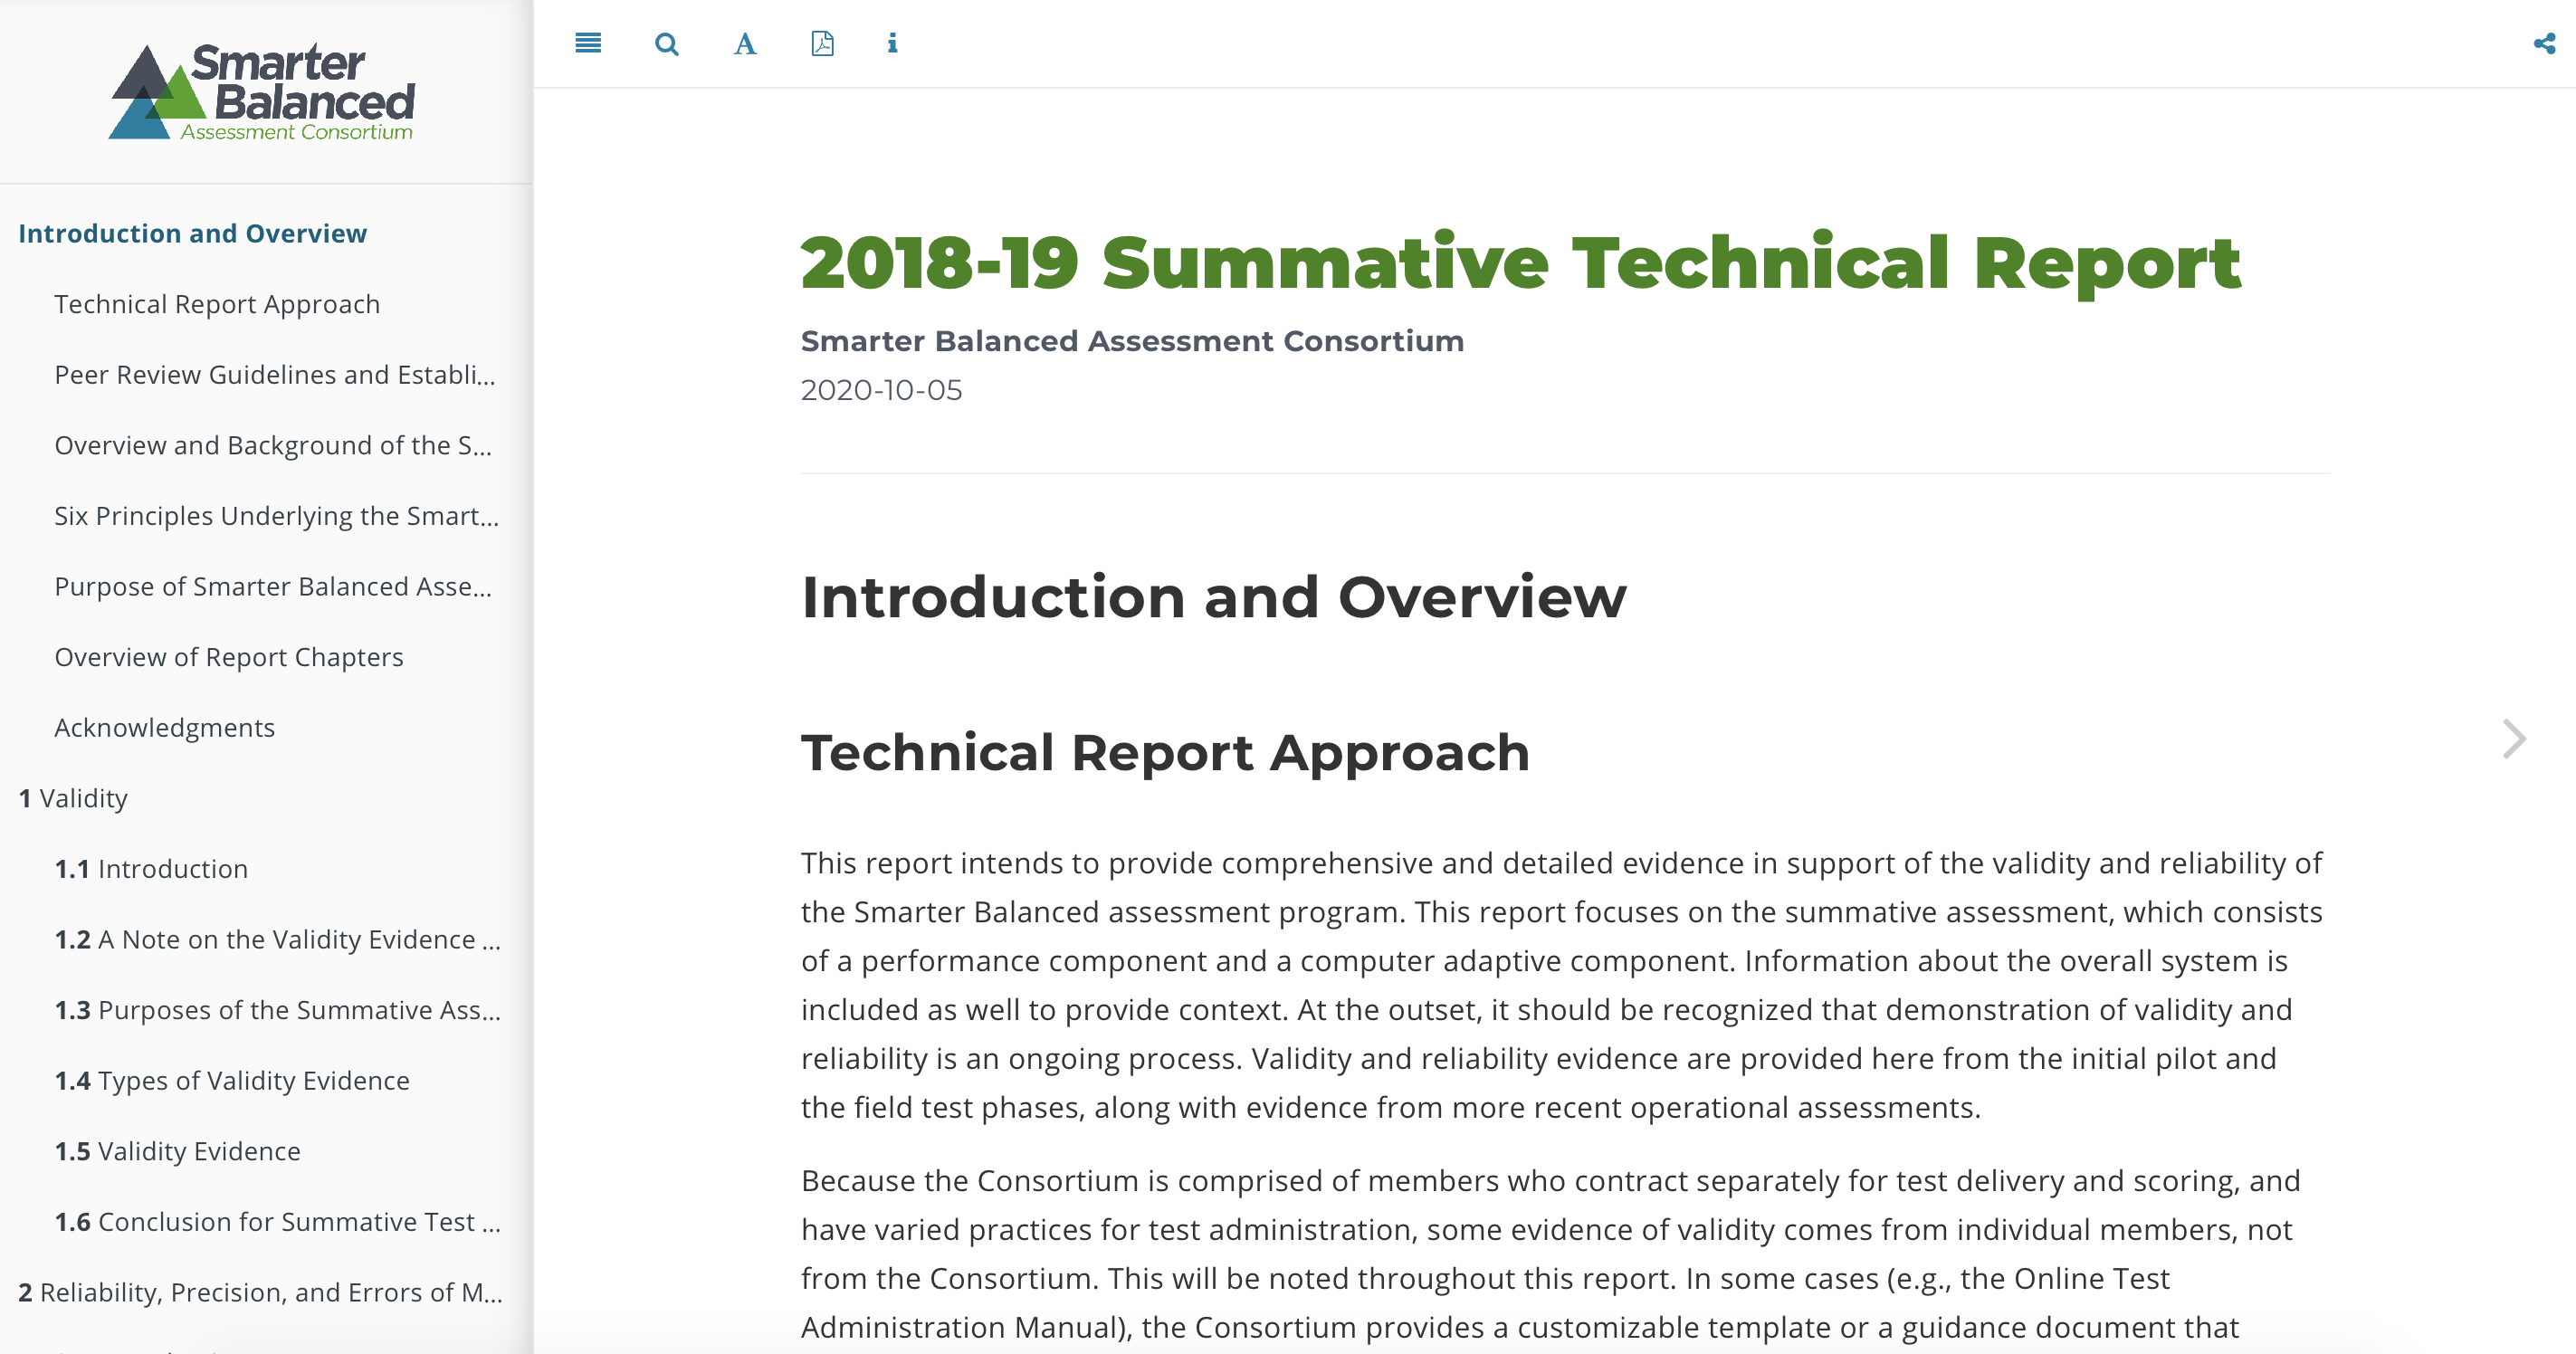 Screenshot of the 2018-19 Summative Technical Report.